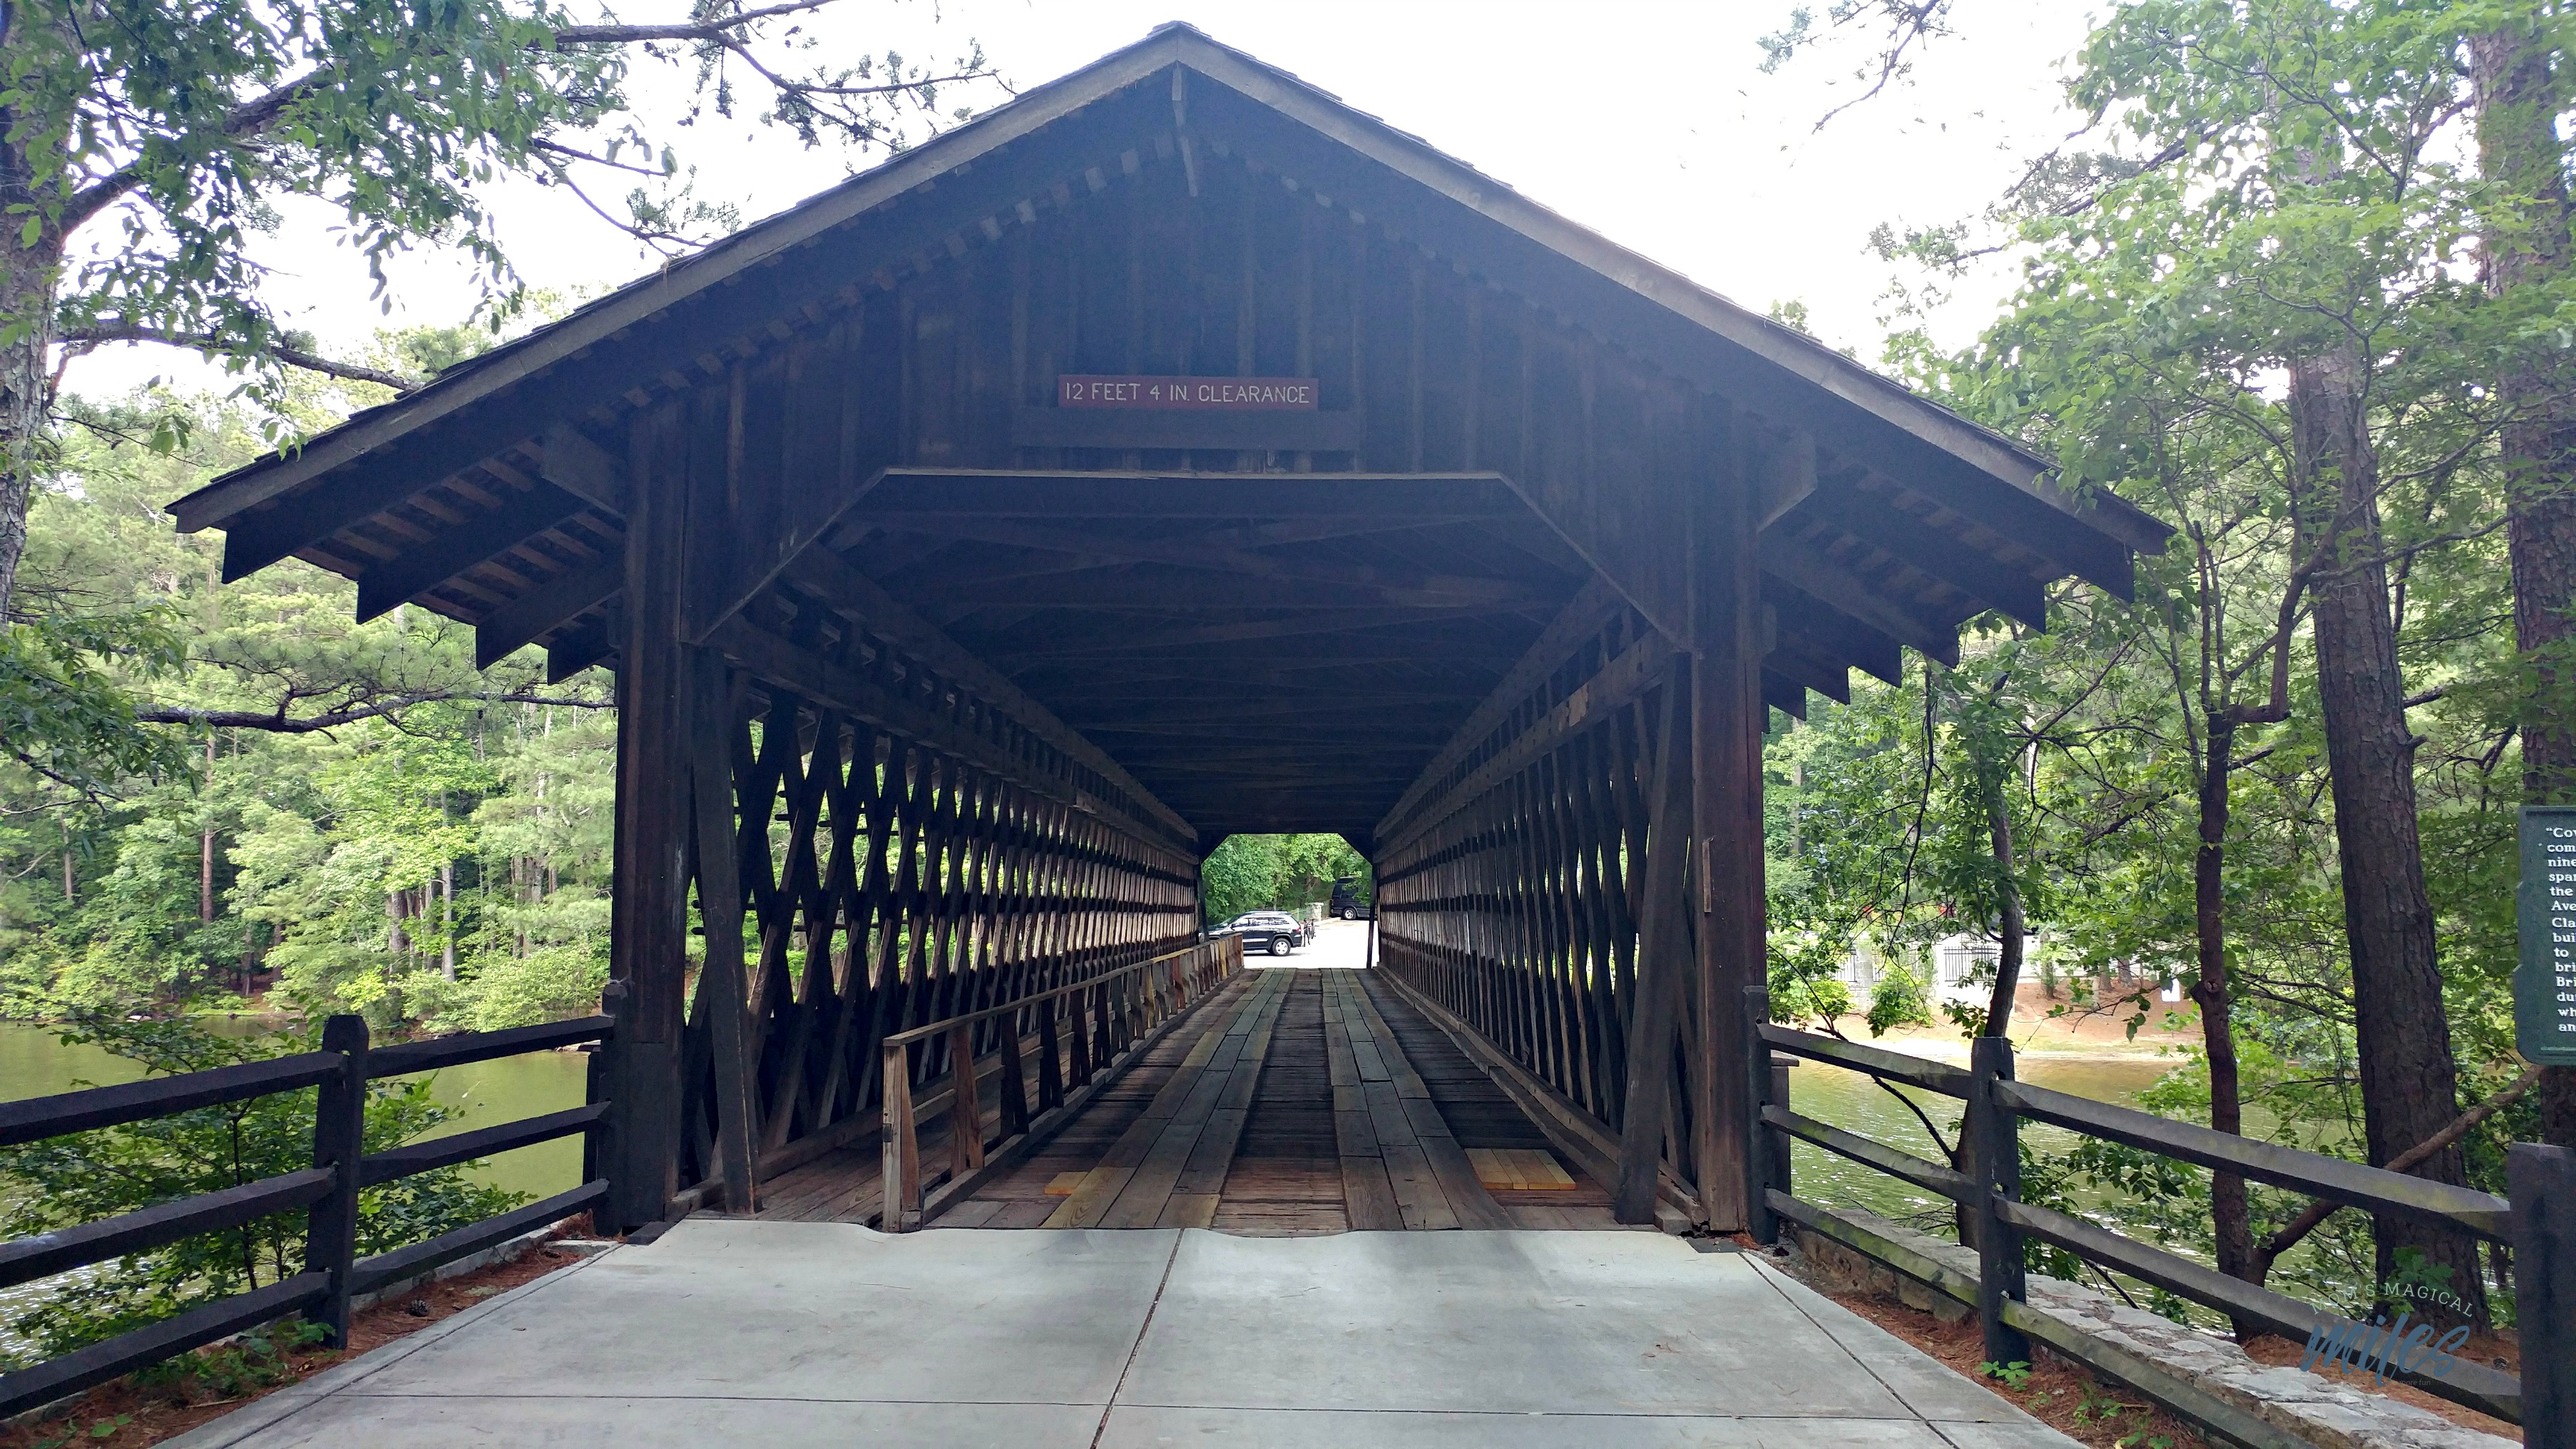 It's fun to go back in time and travel through the covered bridge at Stone Mountain Park!